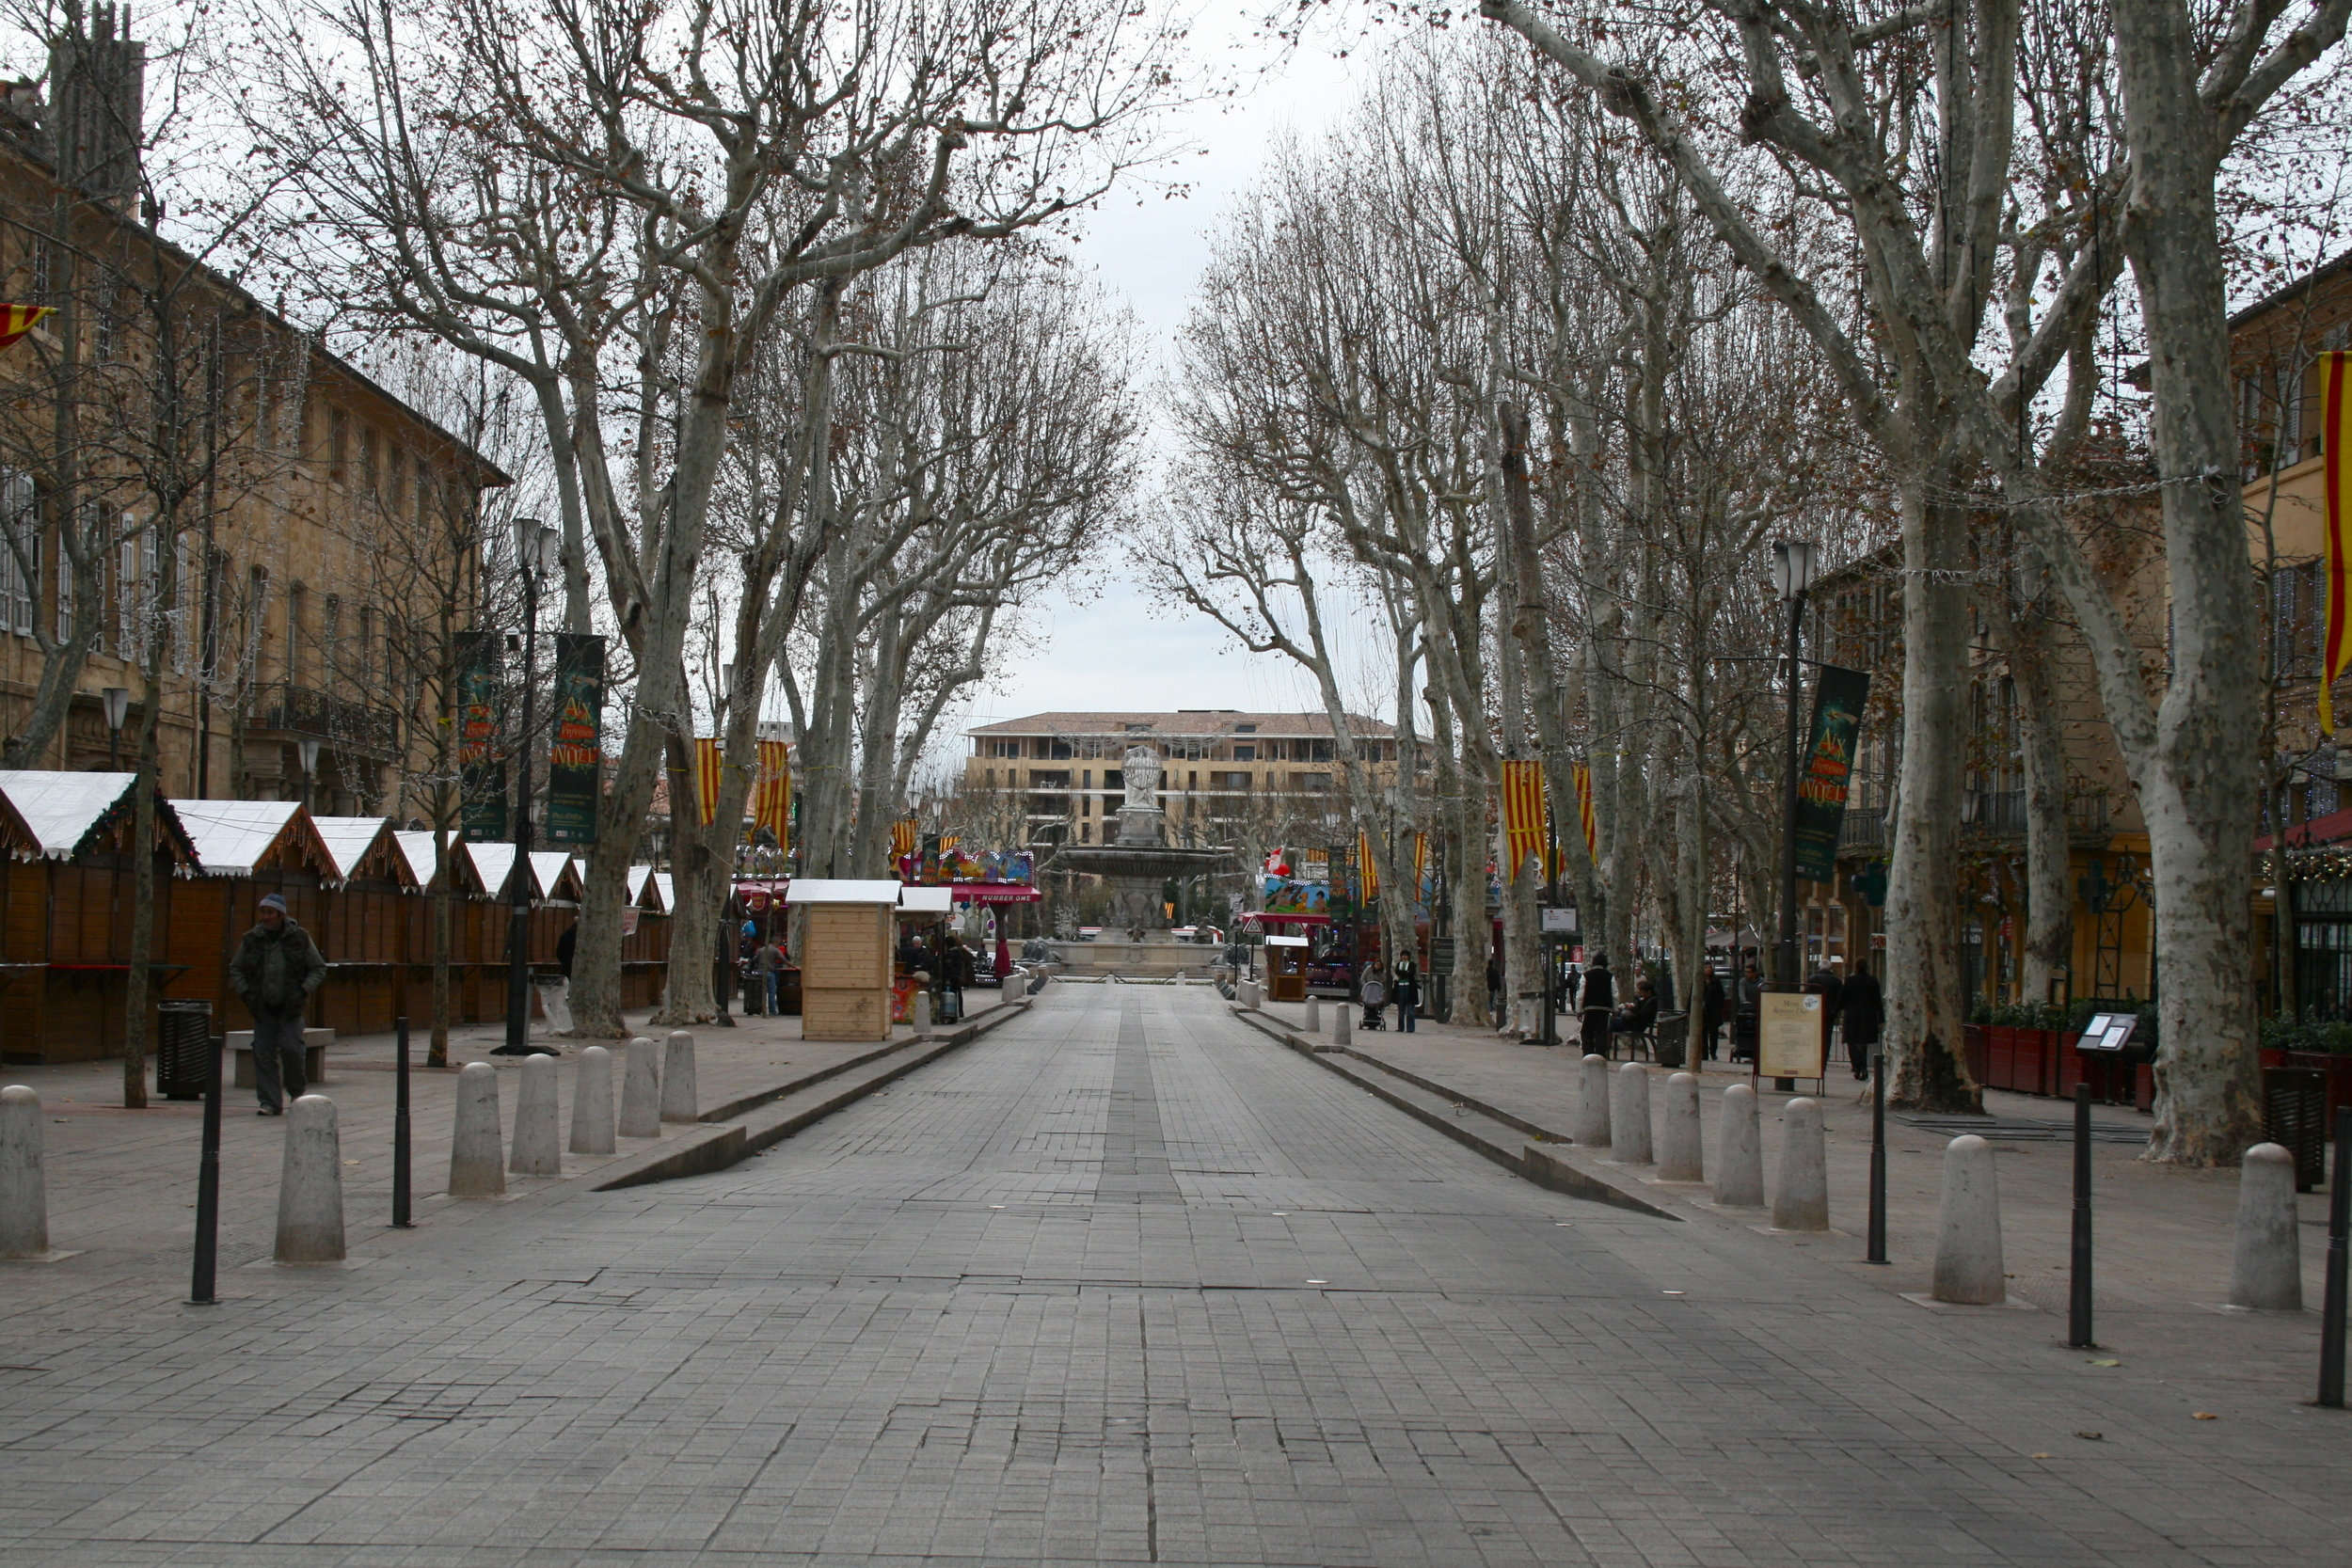 Cours Mirabeau, Aix's version of the Champs-Élysées. I find it slightly ironic that the Christmas market was closed on Christmas.